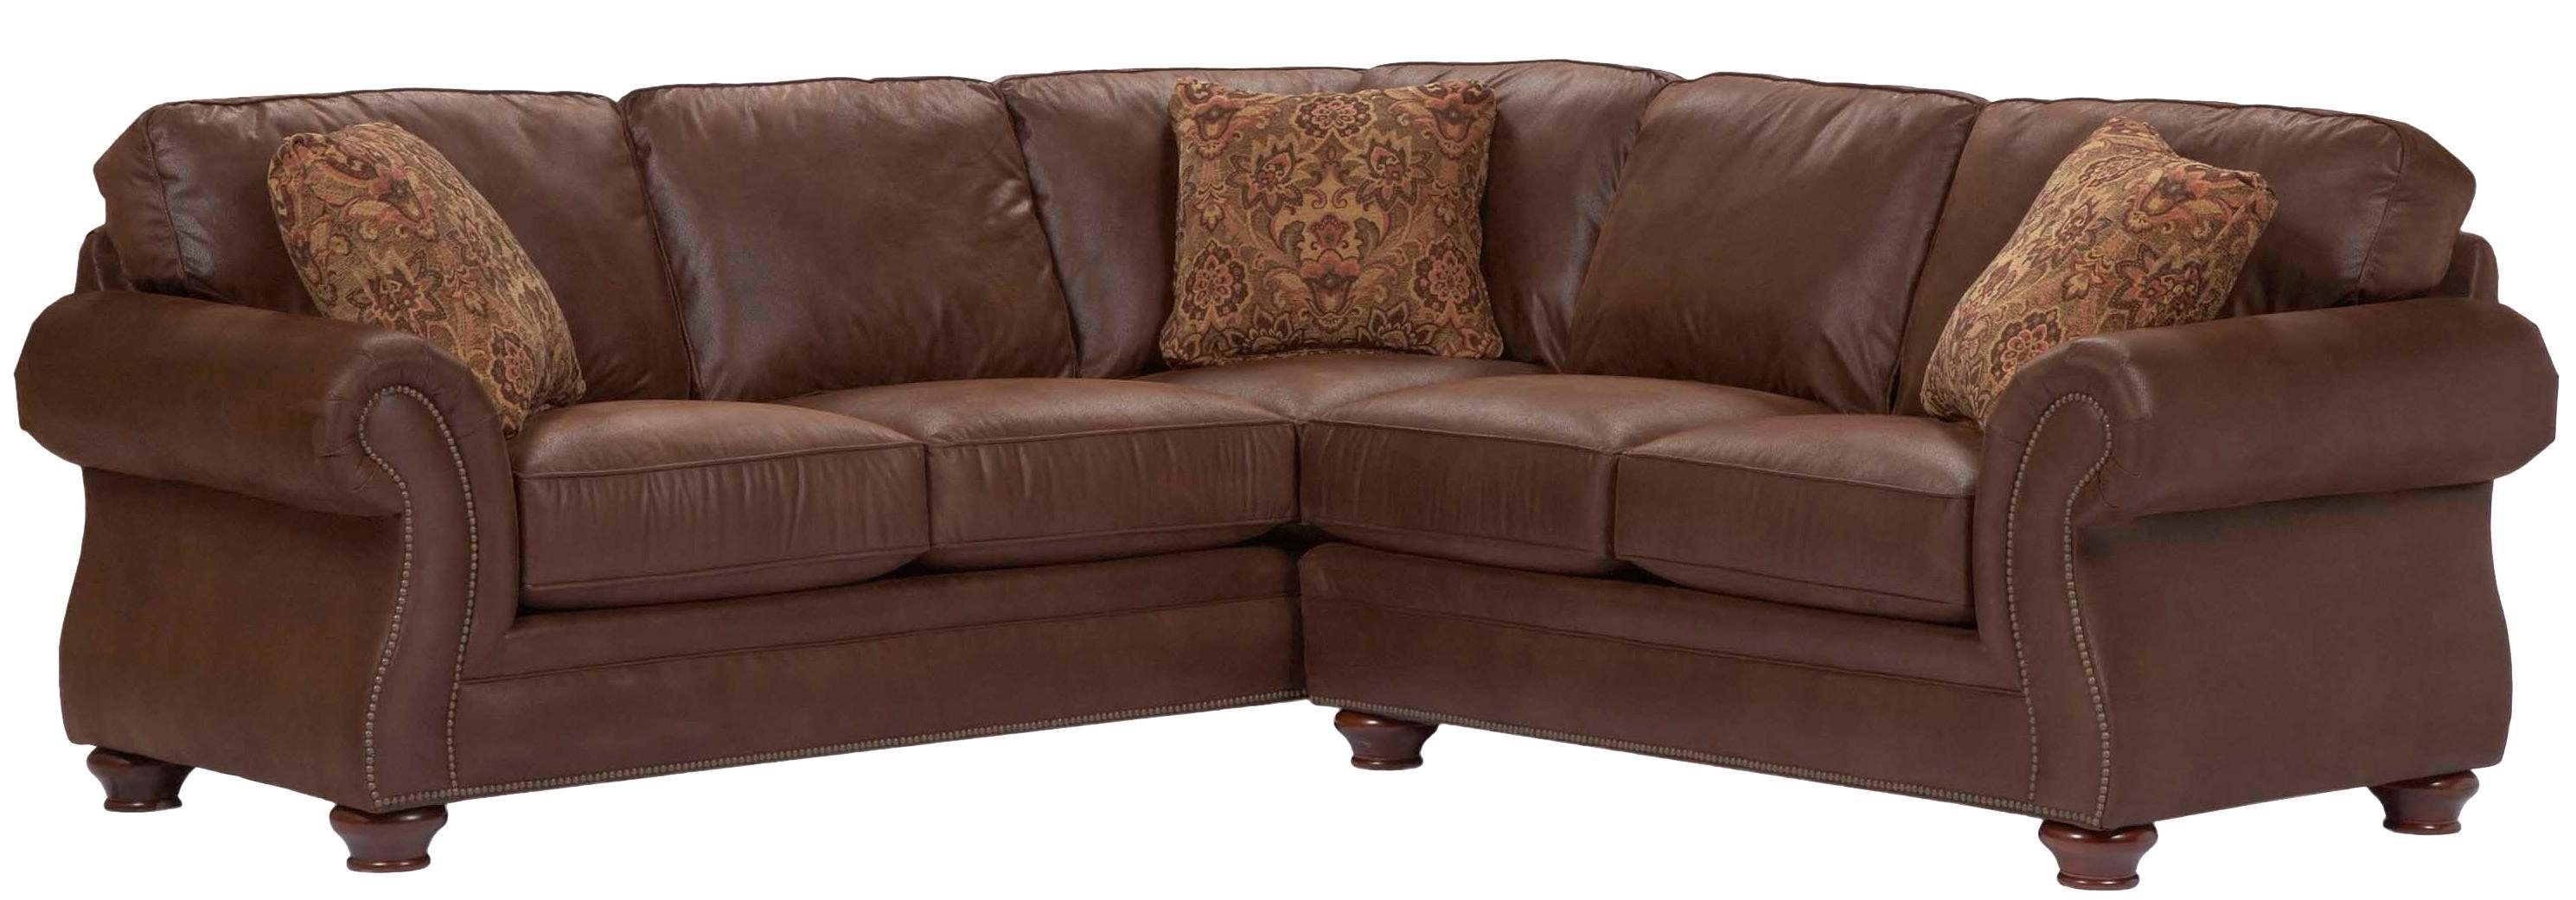 Broyhill Furniture Laramie 2 Piece Corner Sectional Sofa – Ahfa Intended For Roanoke Va Sectional Sofas (View 9 of 10)